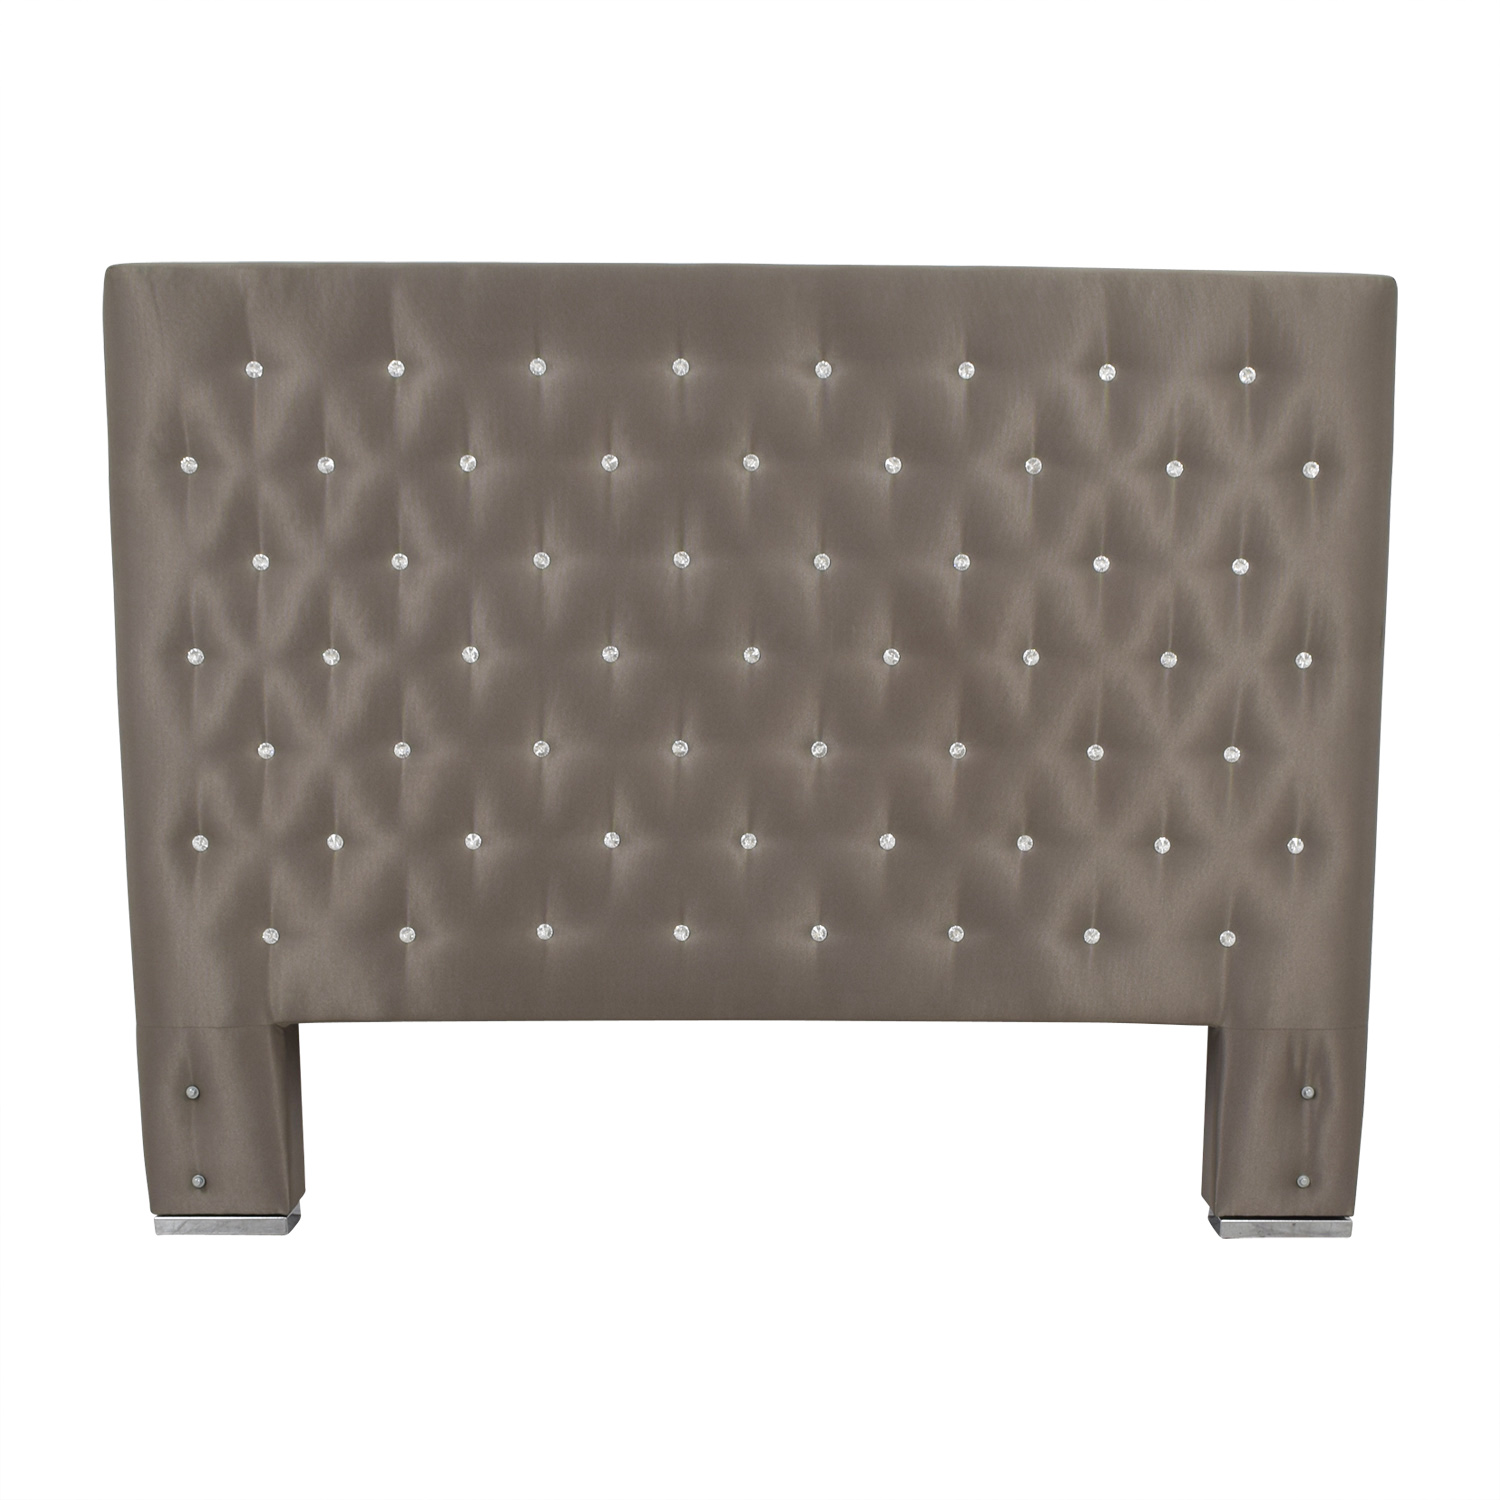 Taupe Diamond Tufted King Headboard on sale